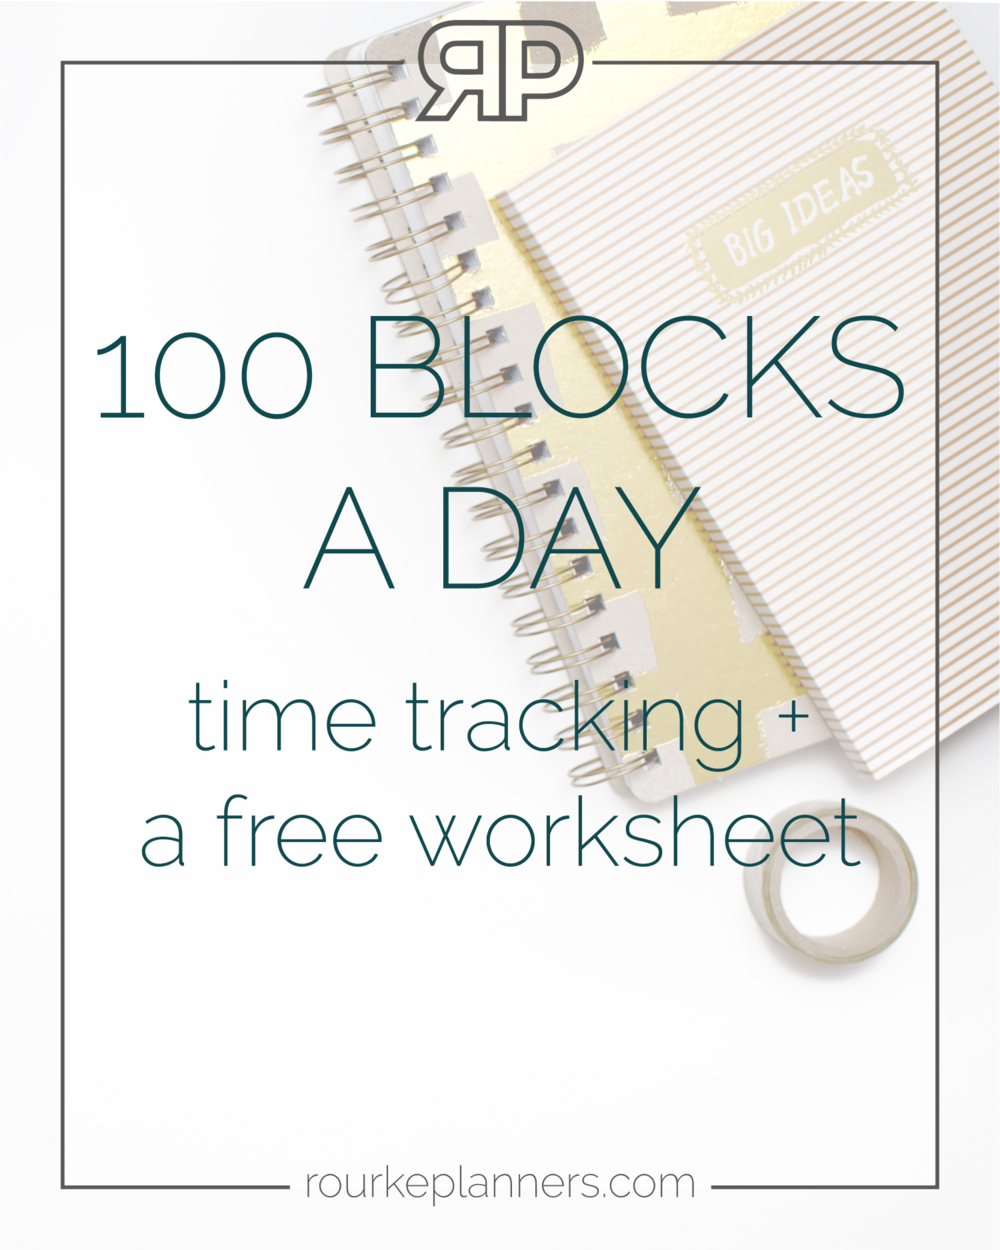 100 Blocks a Day | Rourke Planners